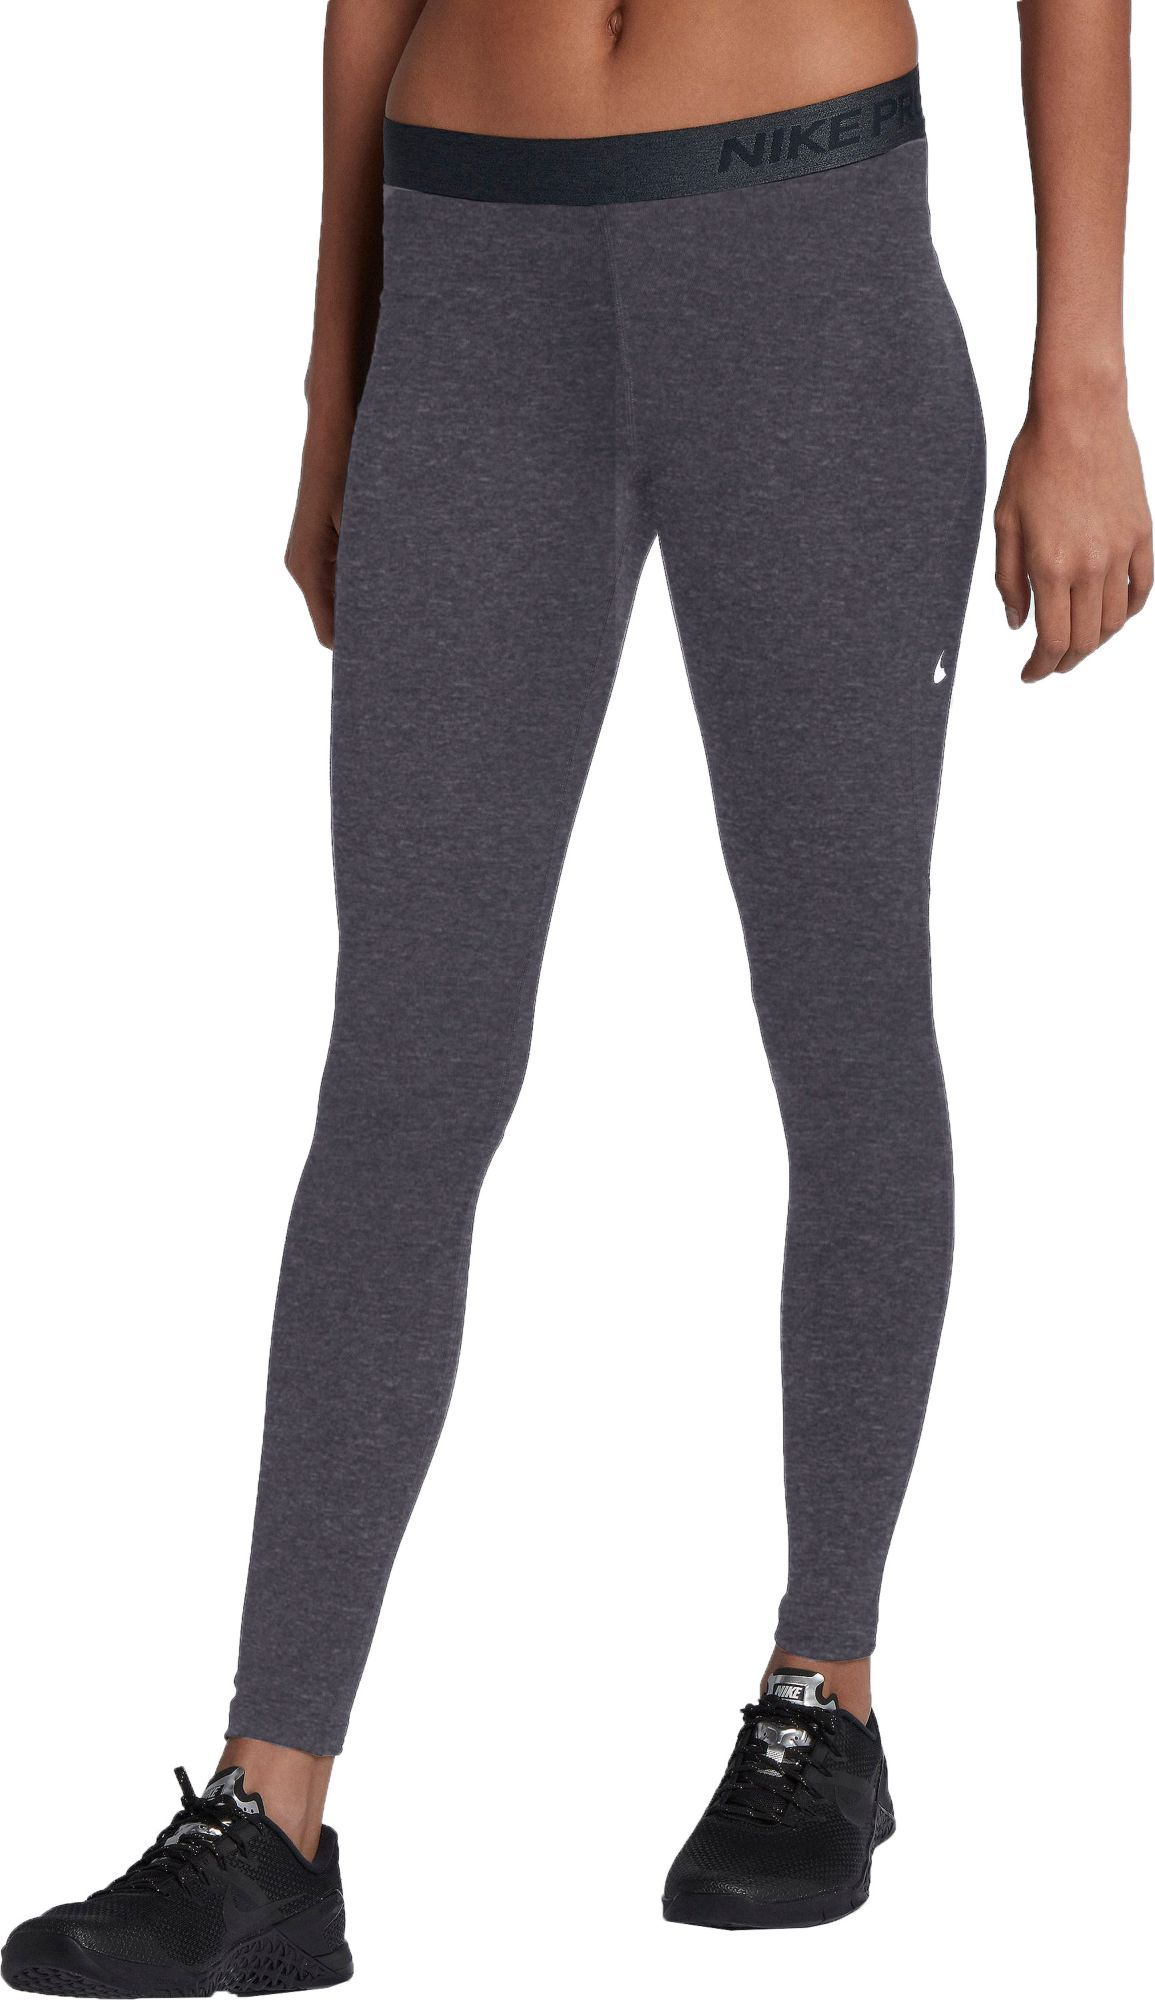 7568f8e4954d9c Nike Women's Pro Warm Training Tights | DICK'S Sporting GoodsProposition 65  warning iconProposition 65 warning icon